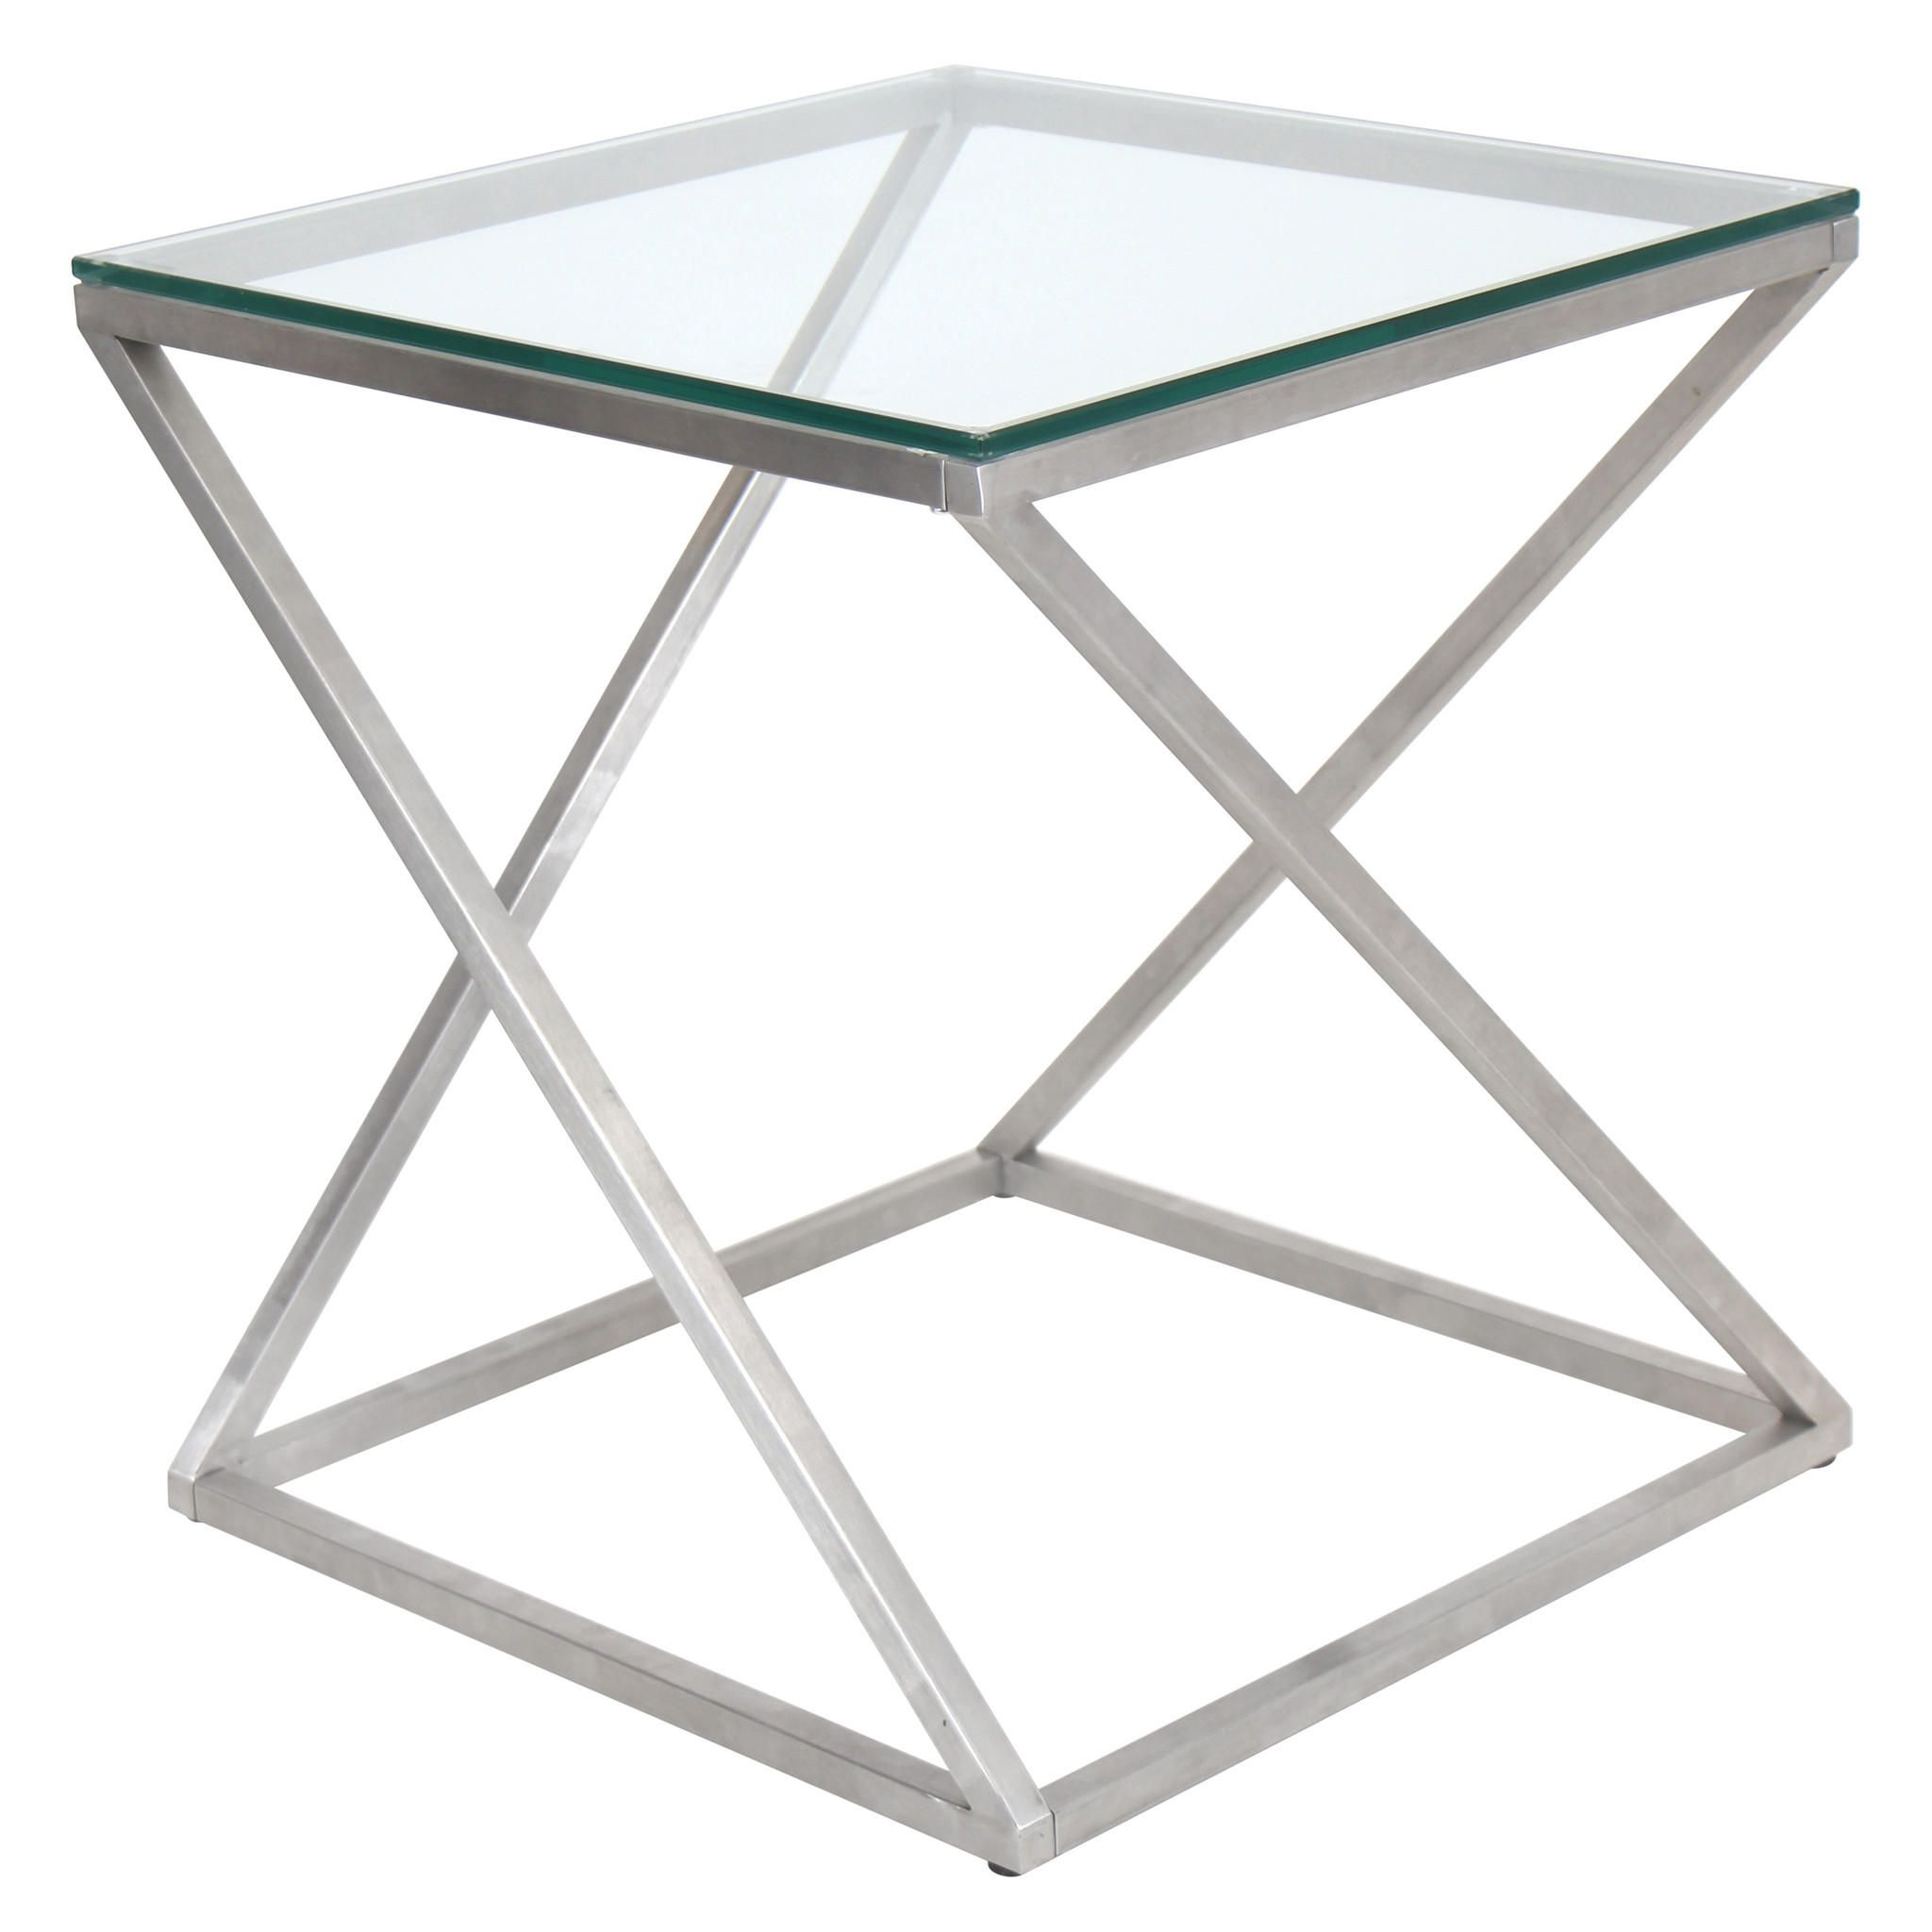 Merveilleux 4z Stainless Steel Modern End Table 1